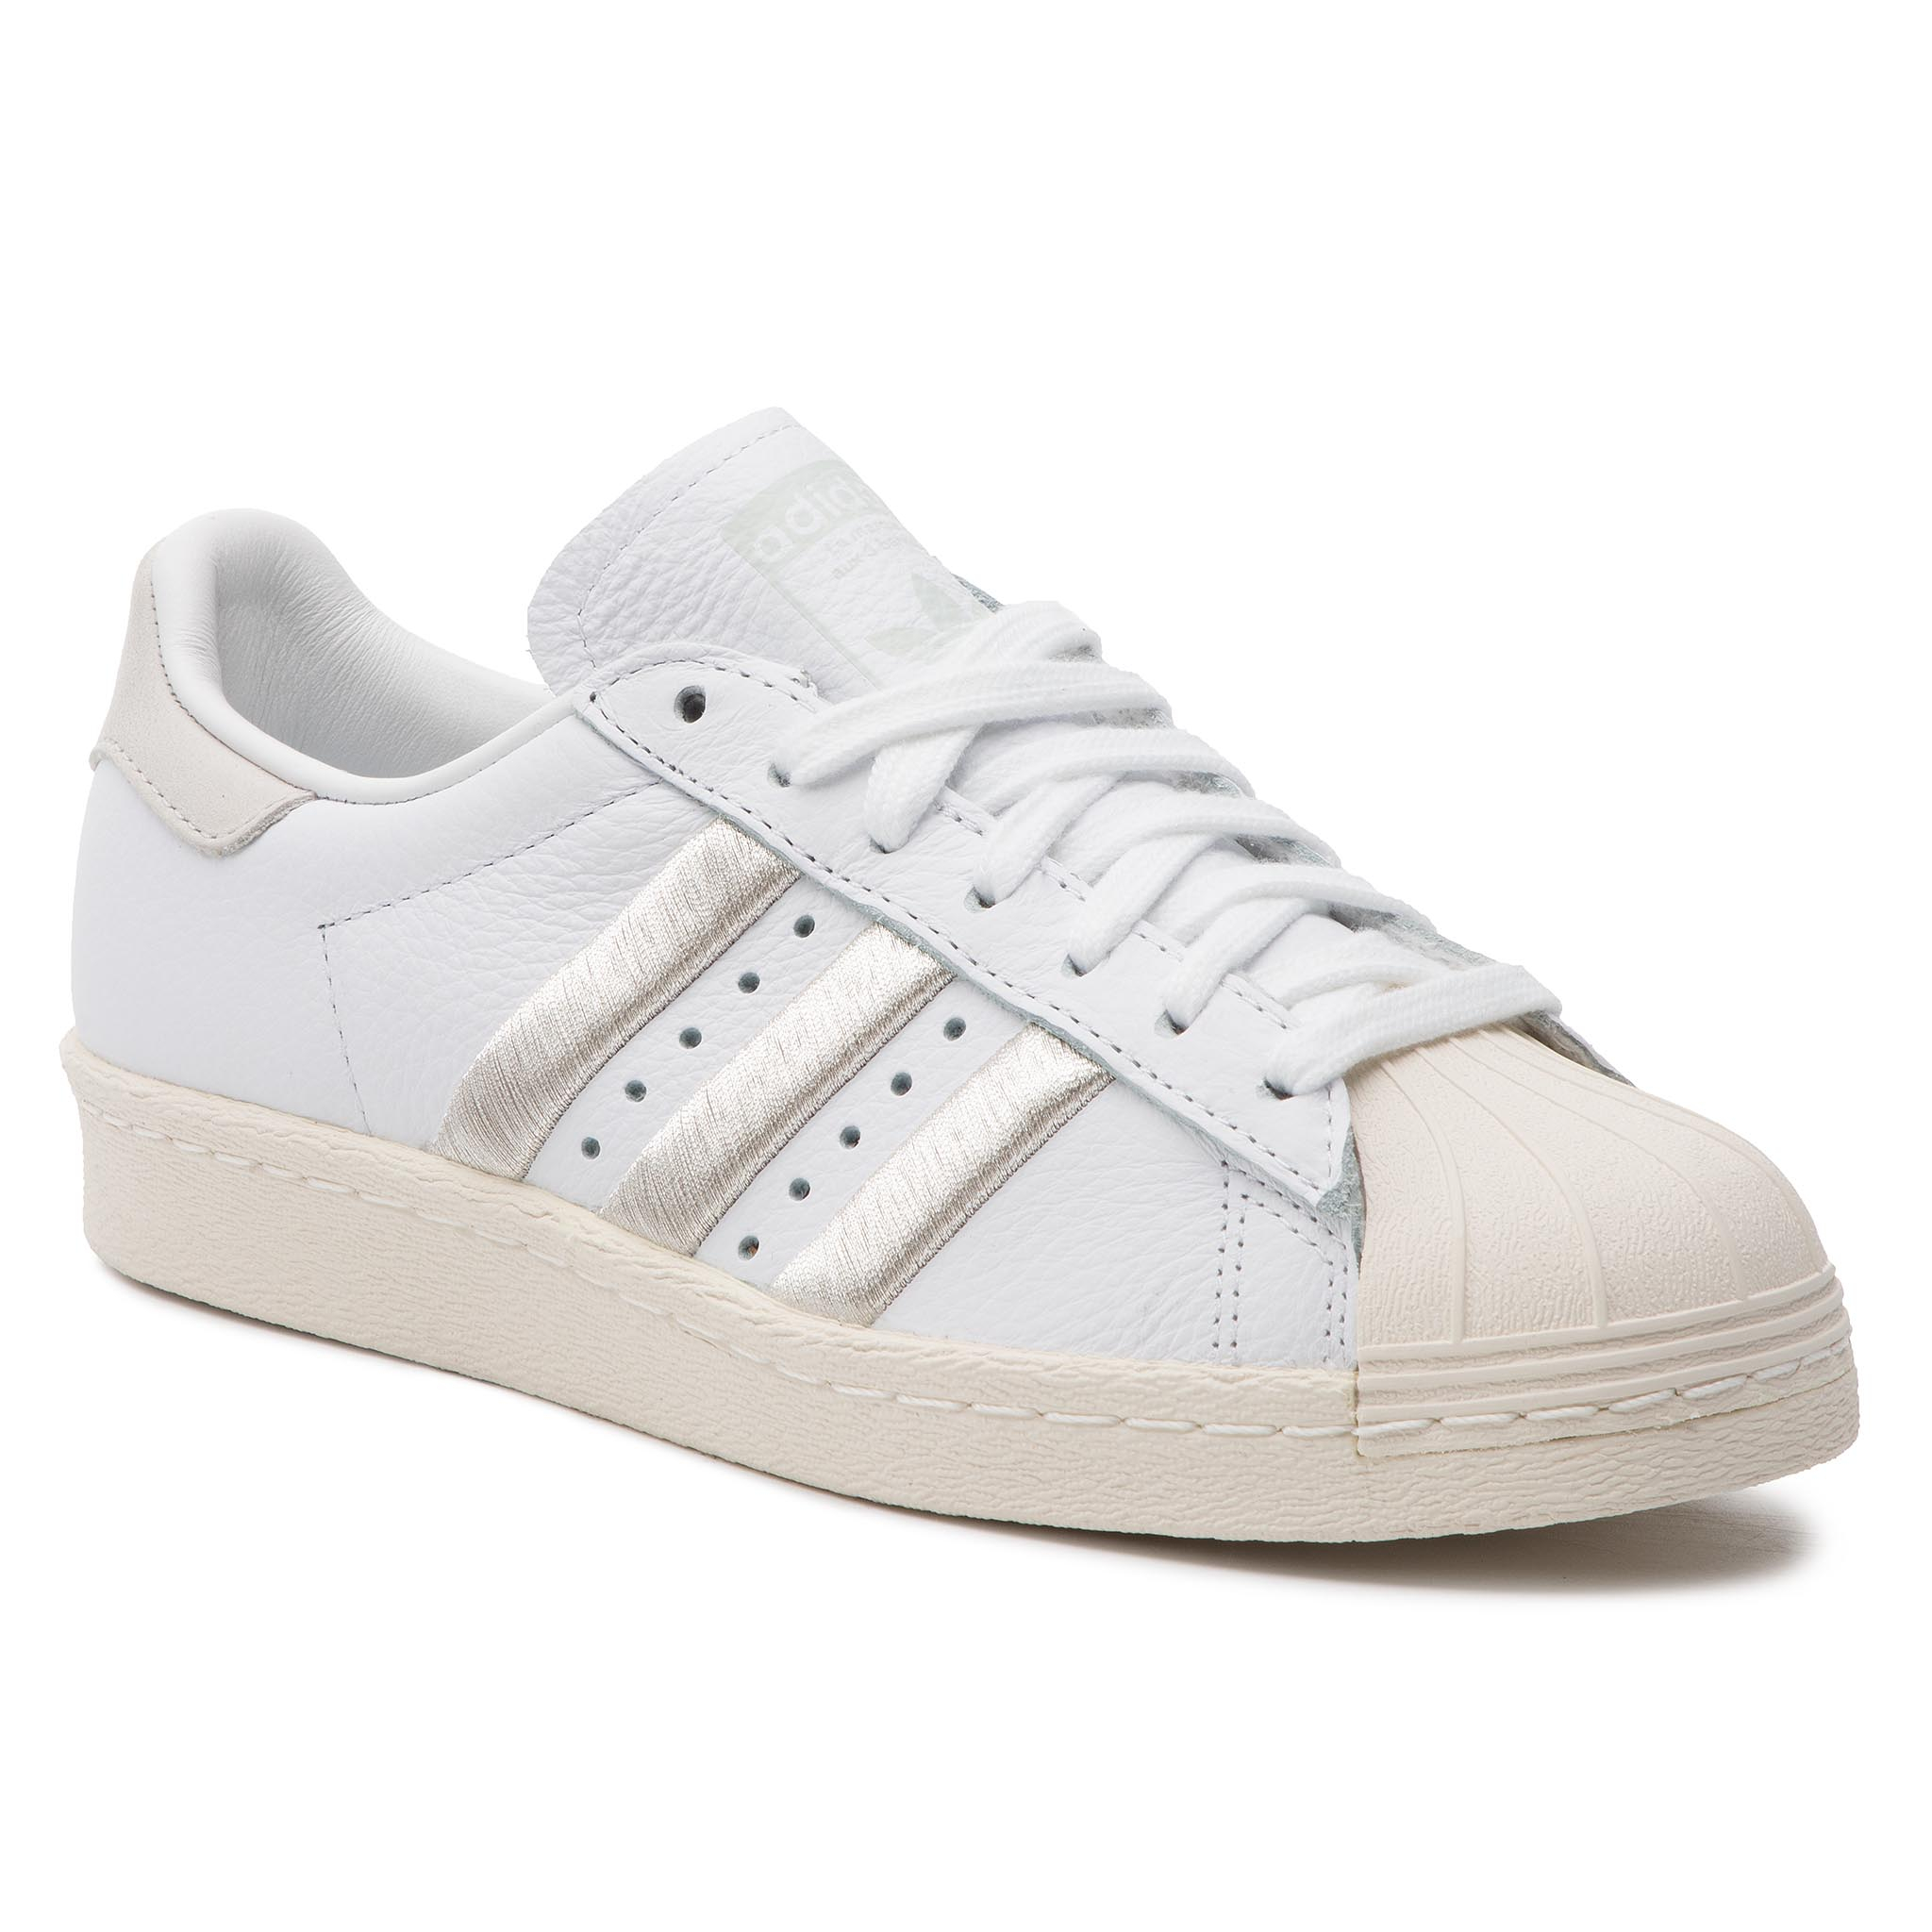 961e35ae2 Shoes adidas - Superstar C CG6708 Ftwwht Ftwwht - Laced shoes - Low ...